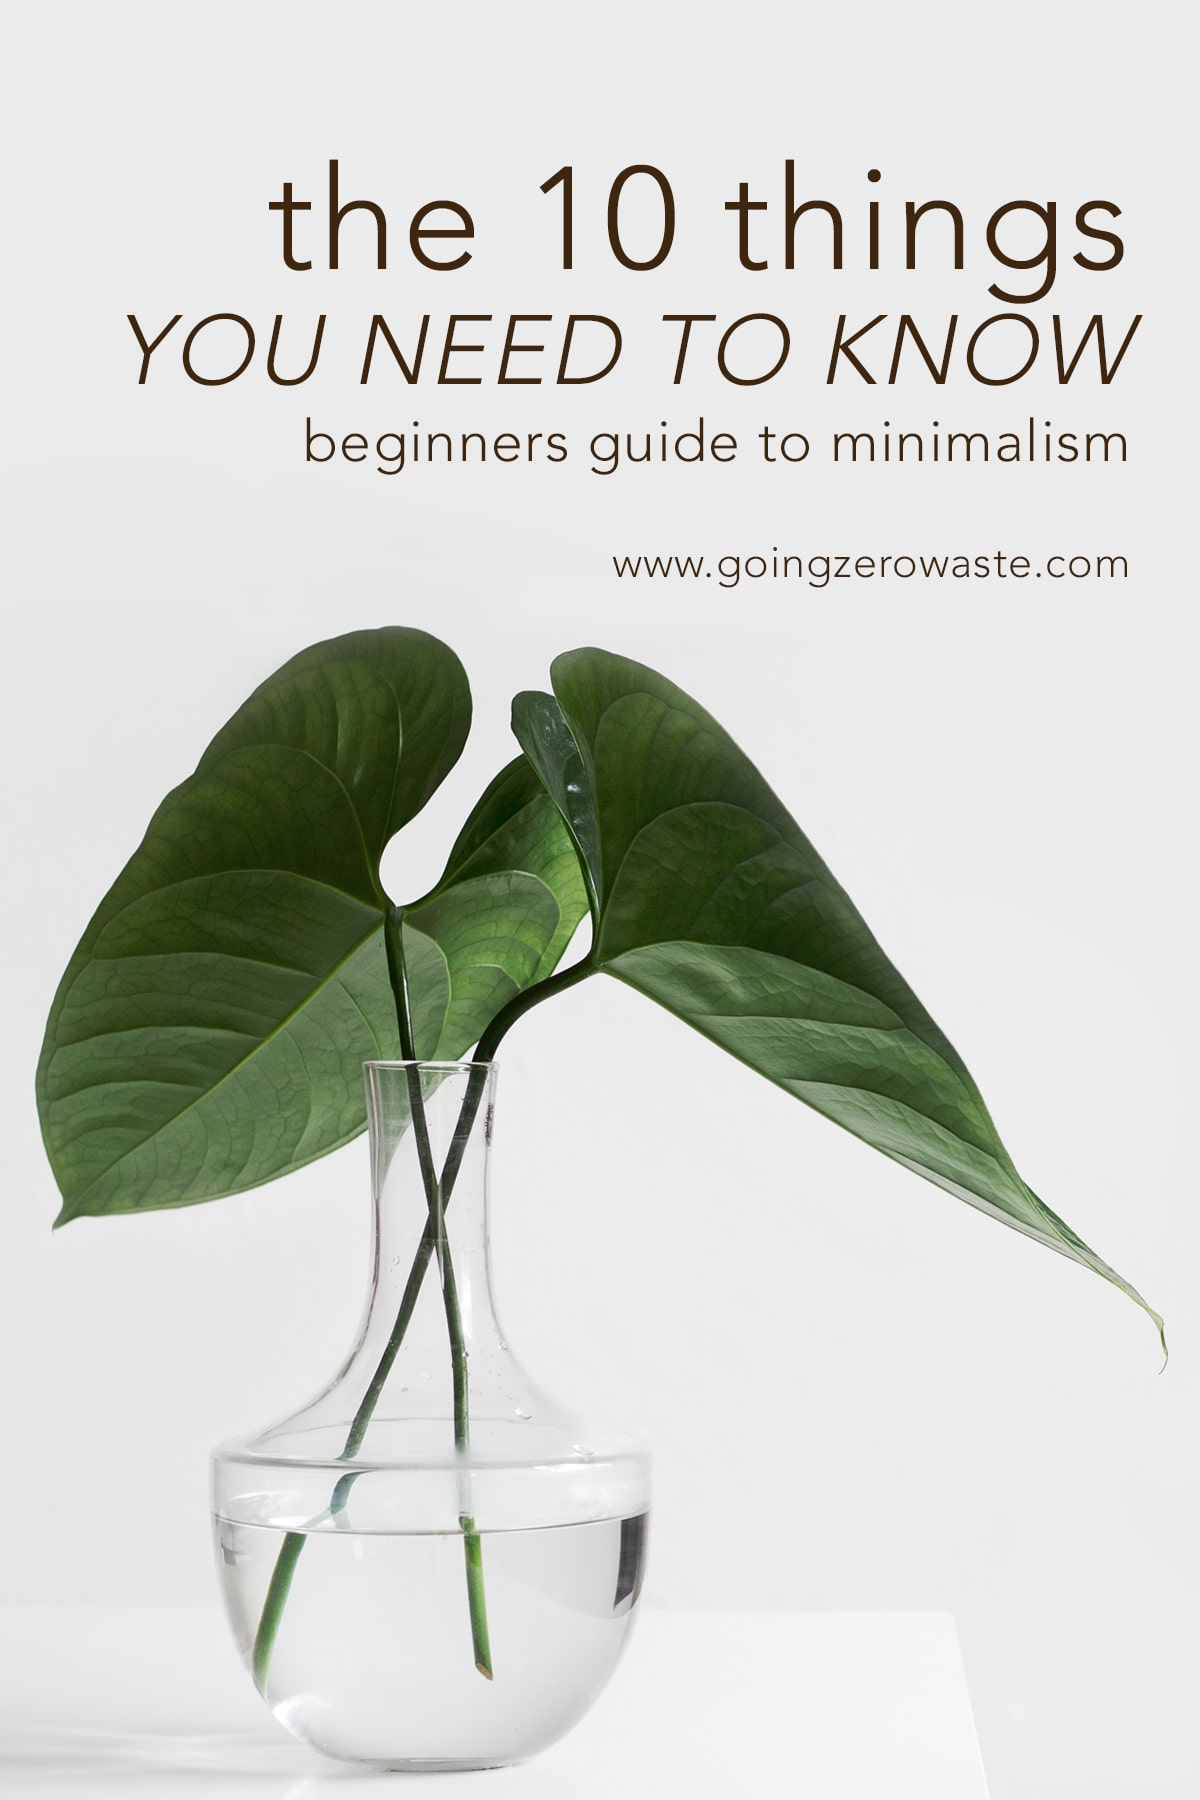 The 10 things you need to know a beginners guide to minimalism from www.goingzerowaste.com #minimalism #ecofriendly #sustainable #simpleliving #simplicity